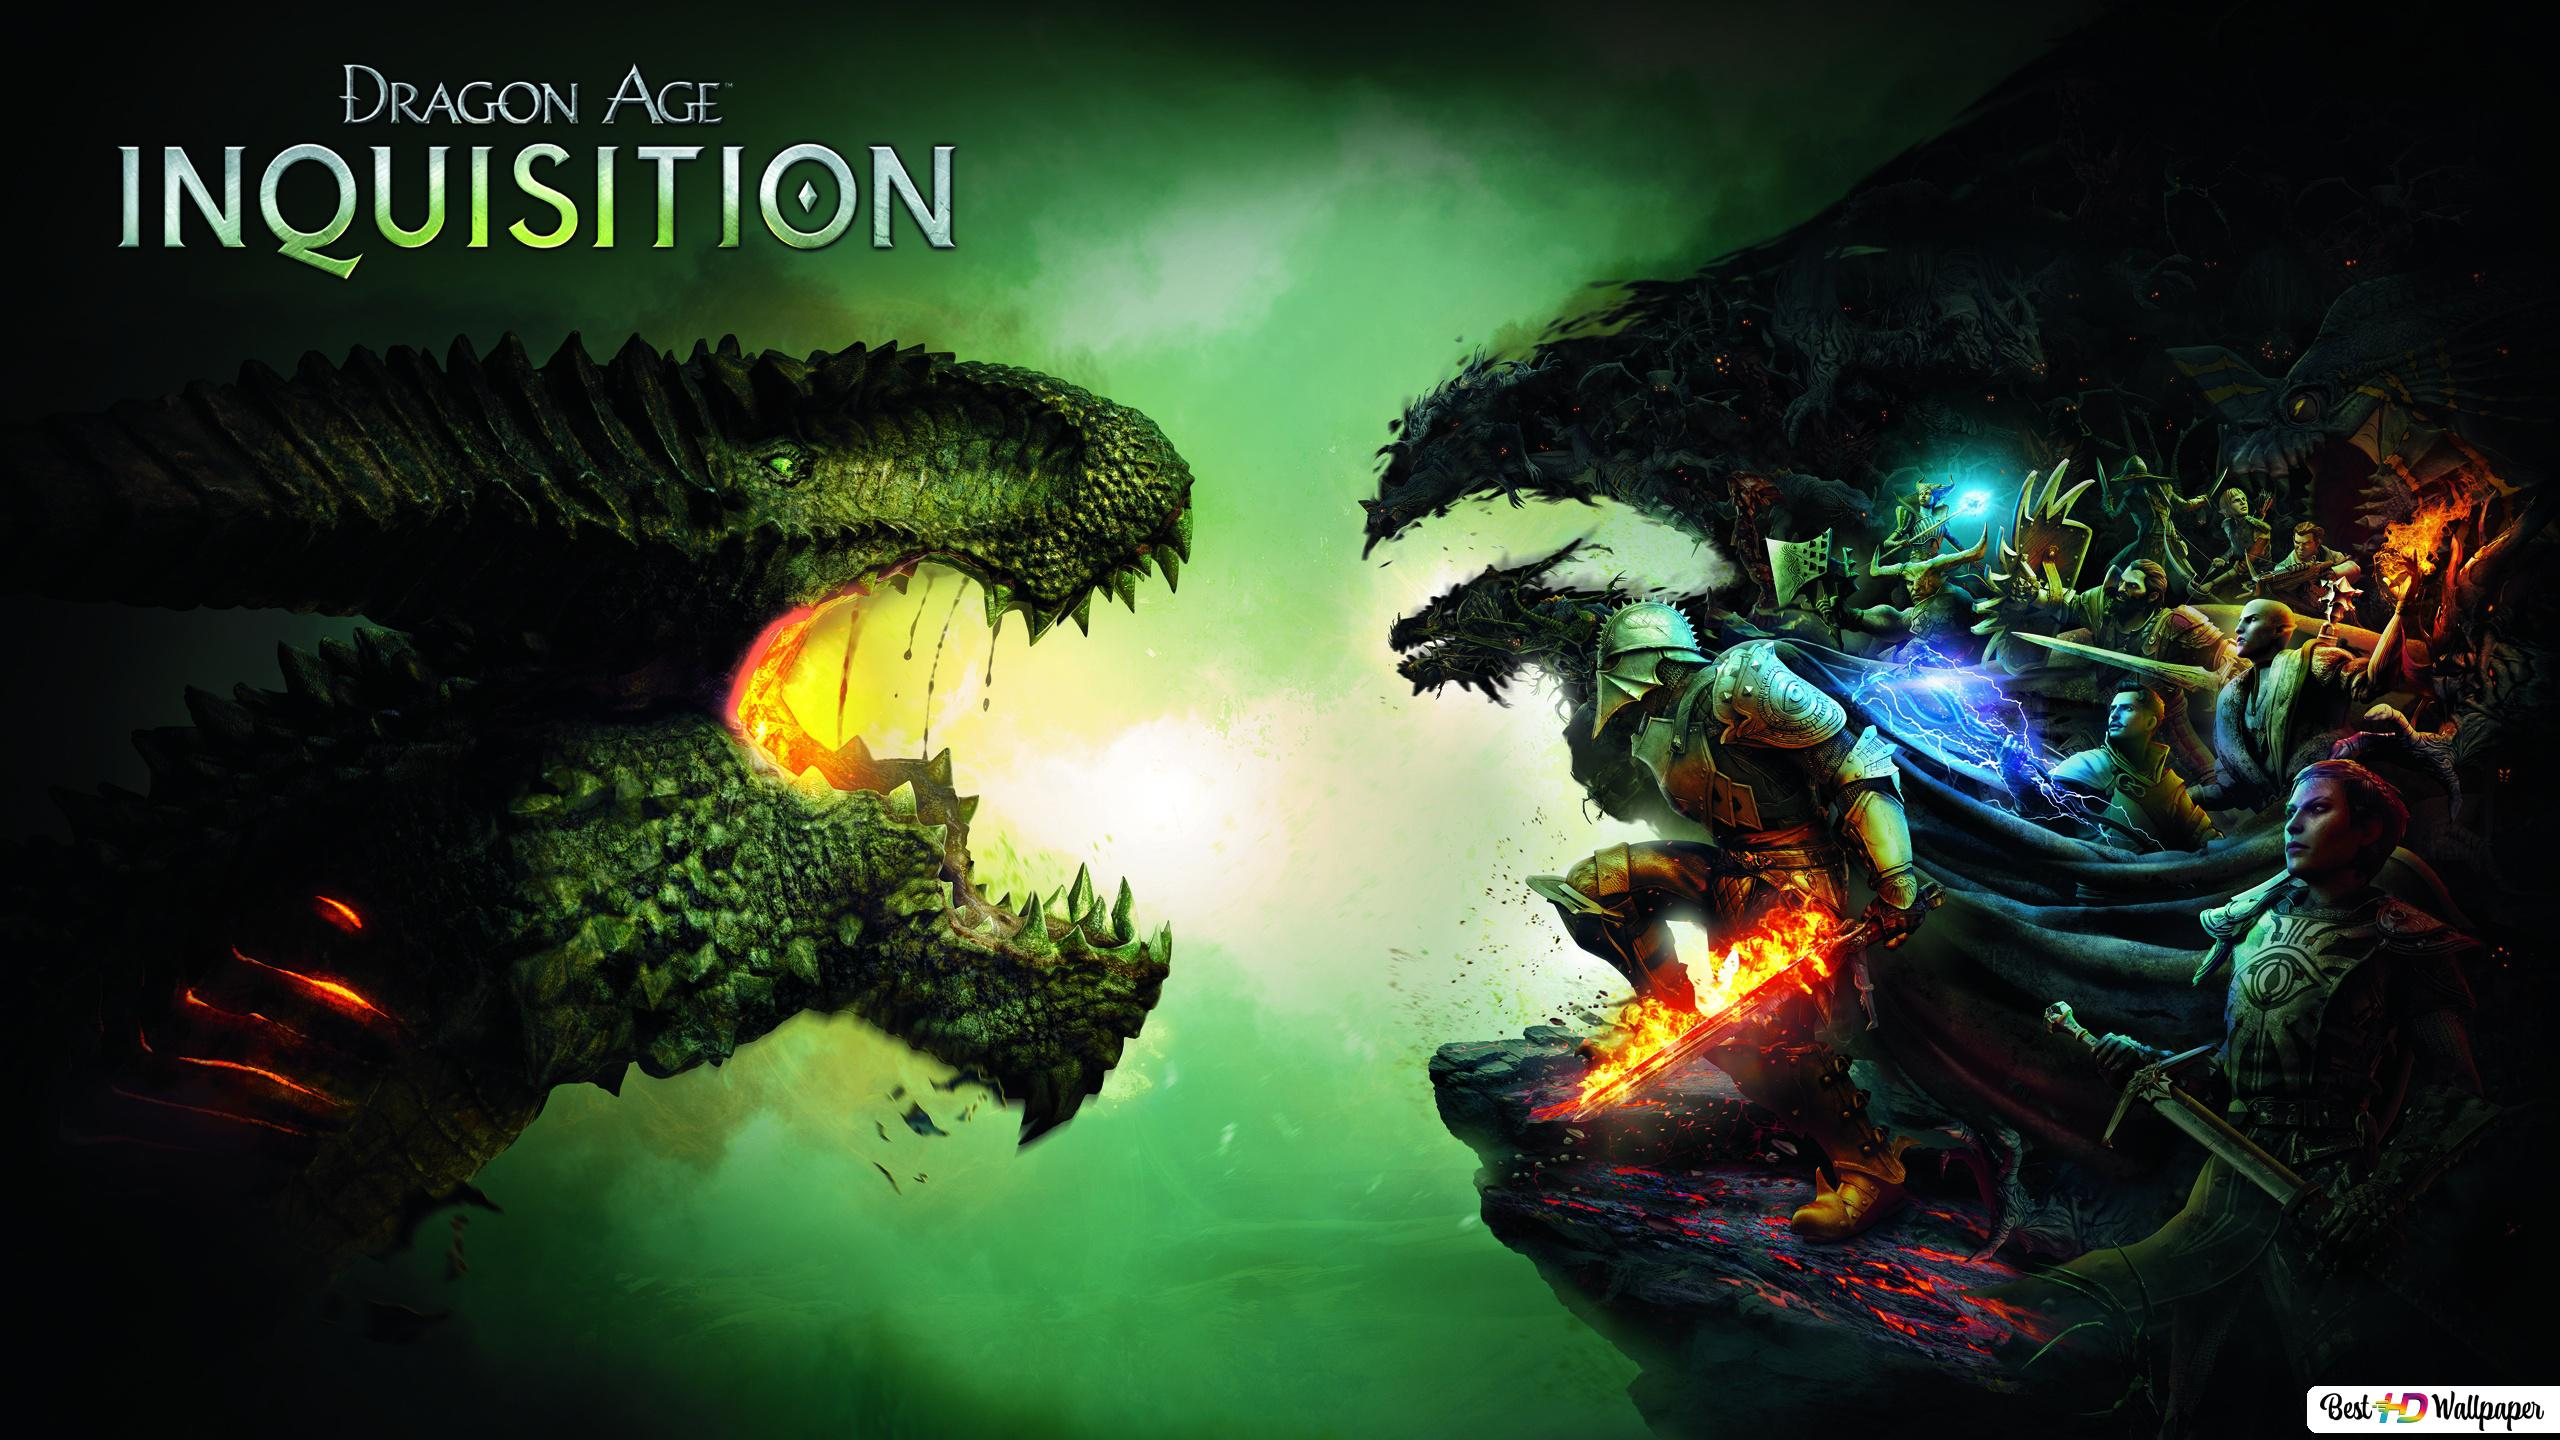 Dragon Age Inquisition Game Hd Wallpaper Download